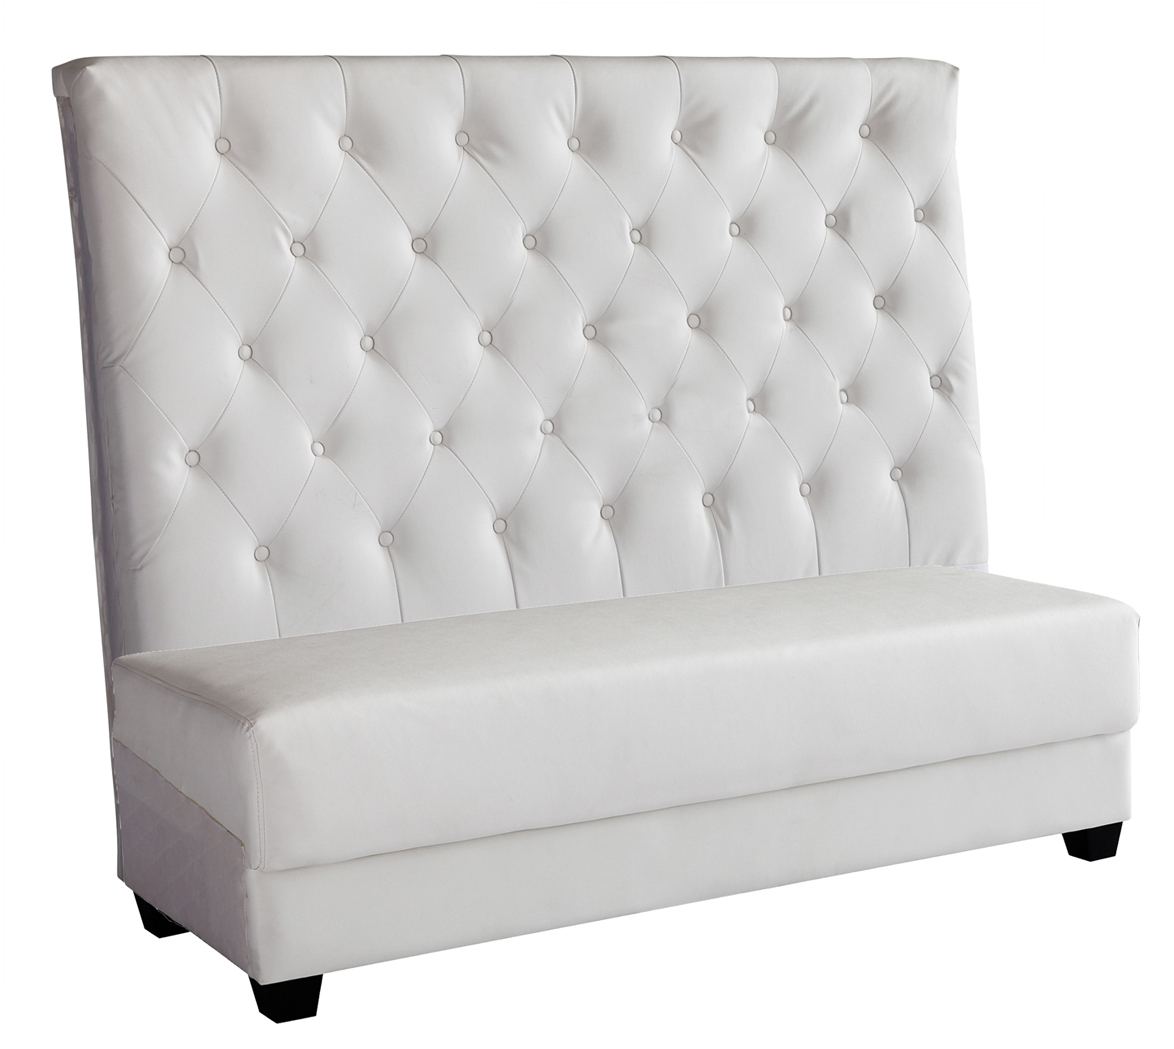 The Luna Collection: Tufted White  Settee